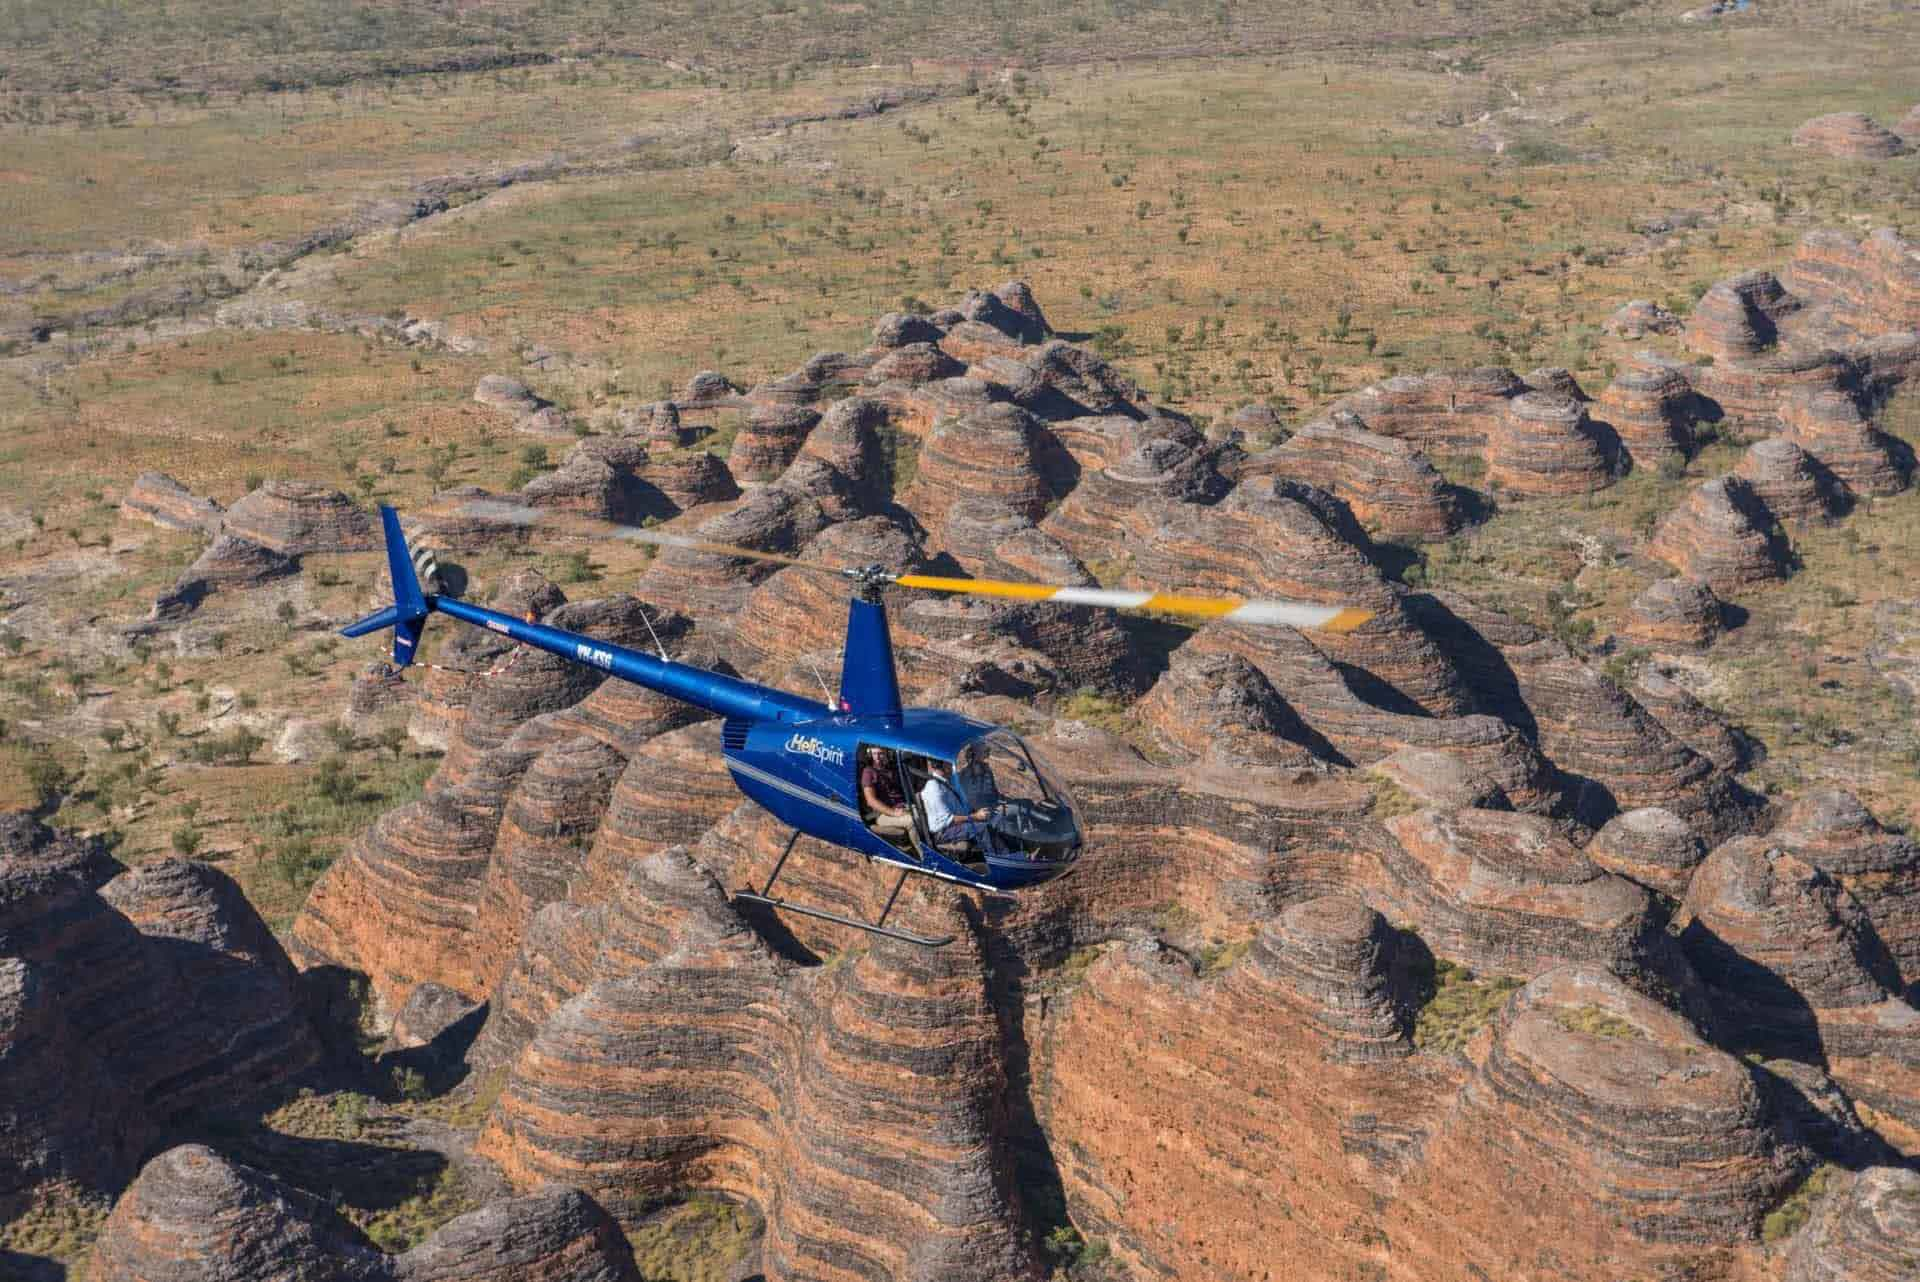 Piccaninny Gorge Heli Hike, Bungle Bungle Guided Tours, Helicopter